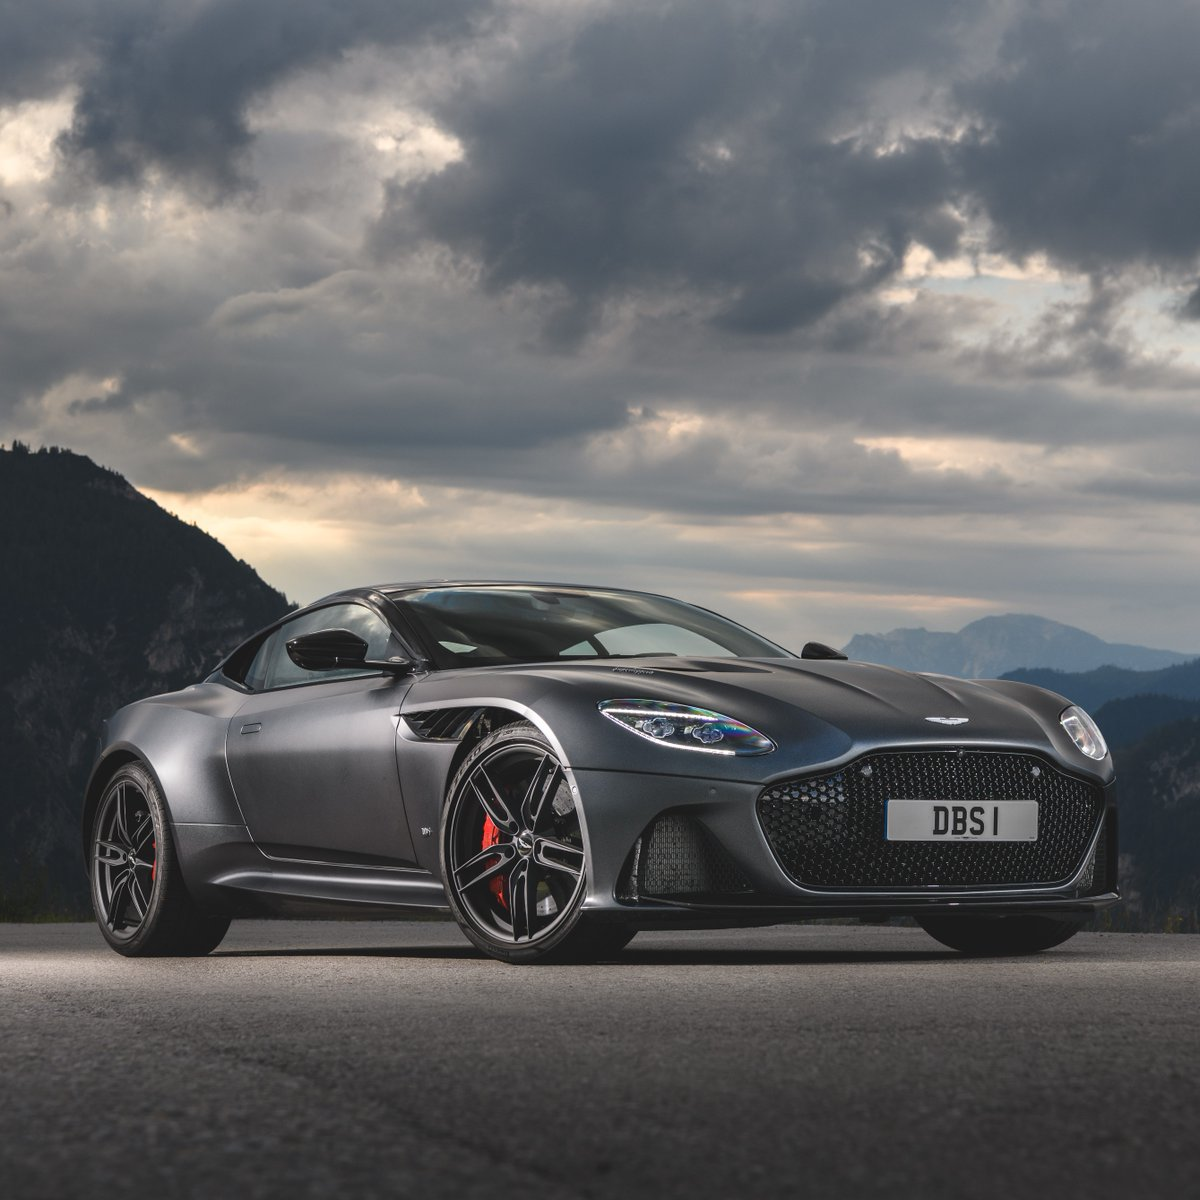 Aston Martin On Twitter Past Present And Future To Mark The 25th Bond Film Notimetodie Four Of Our Cars Will Be Featured In The Film From The Classic Db5 And V8 Vantage